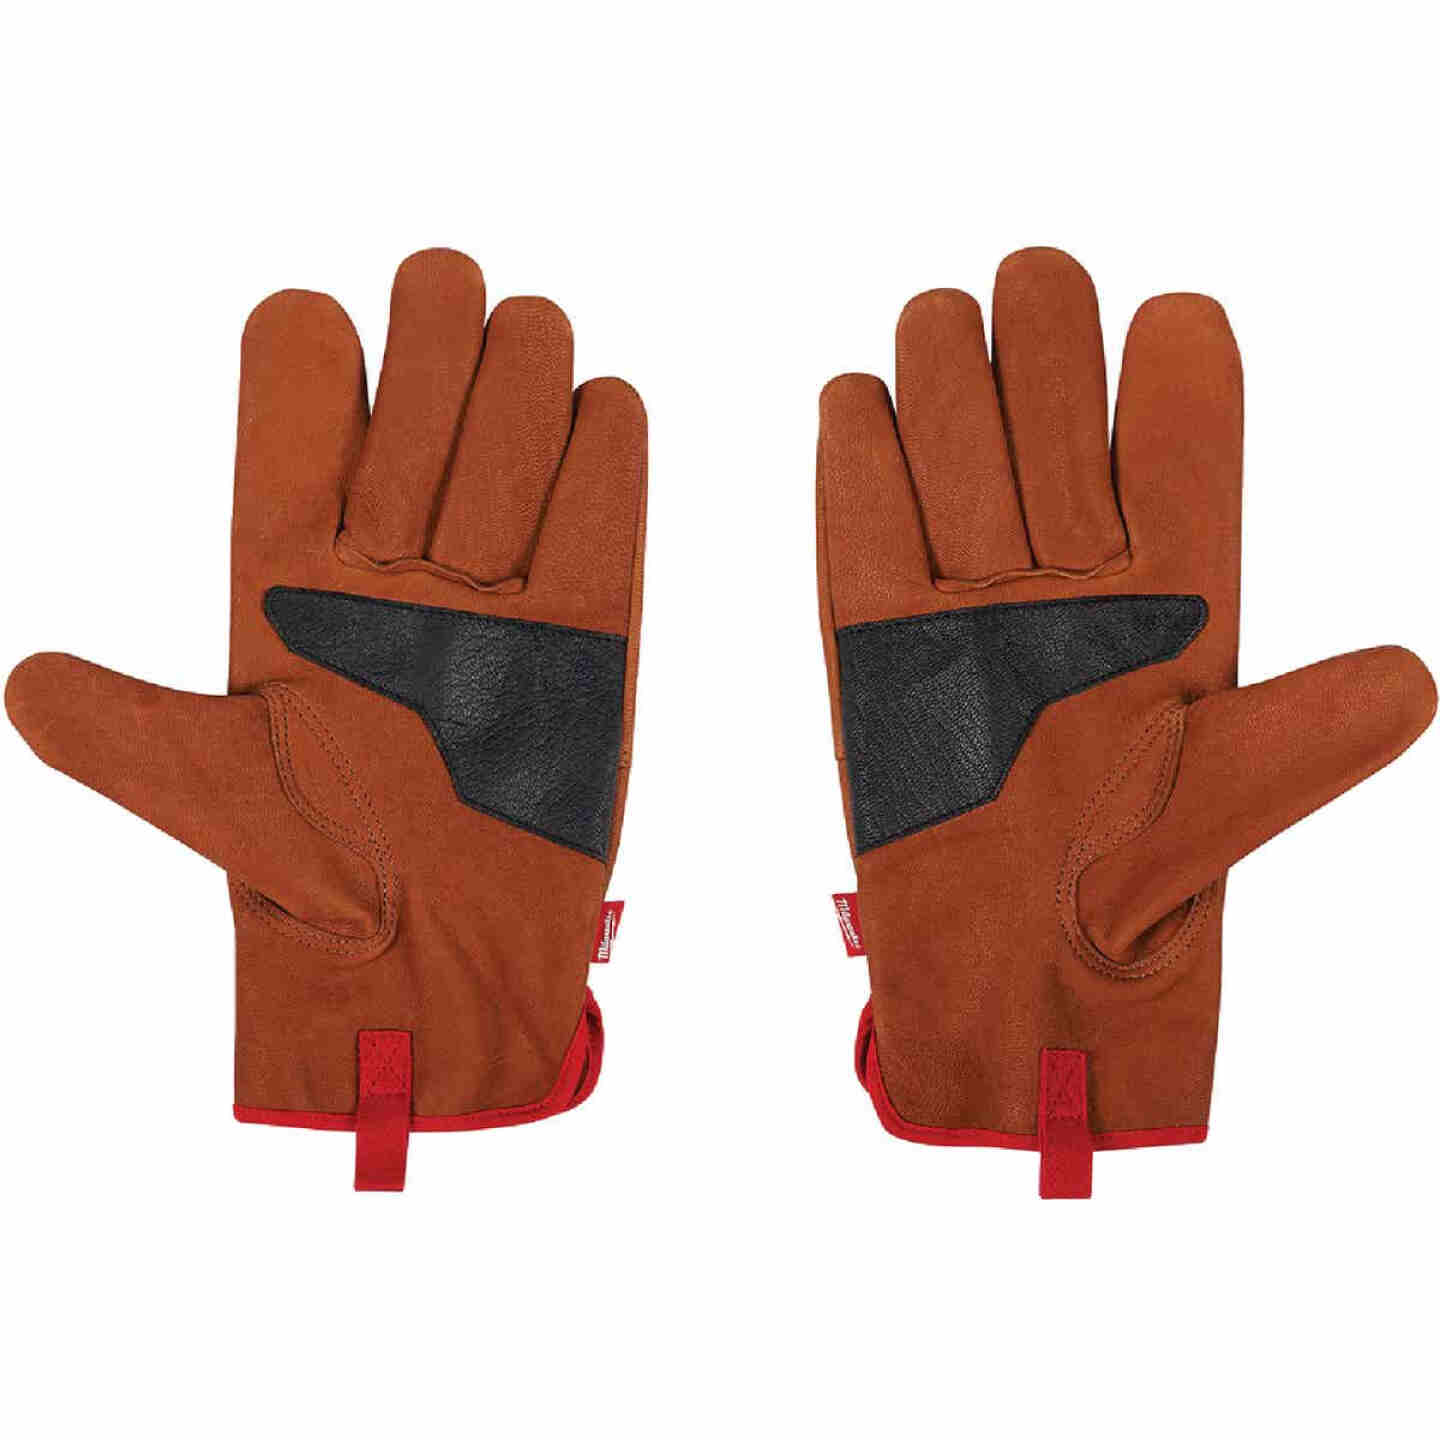 Milwaukee Men's XL Goatskin Leather Work Gloves Image 3